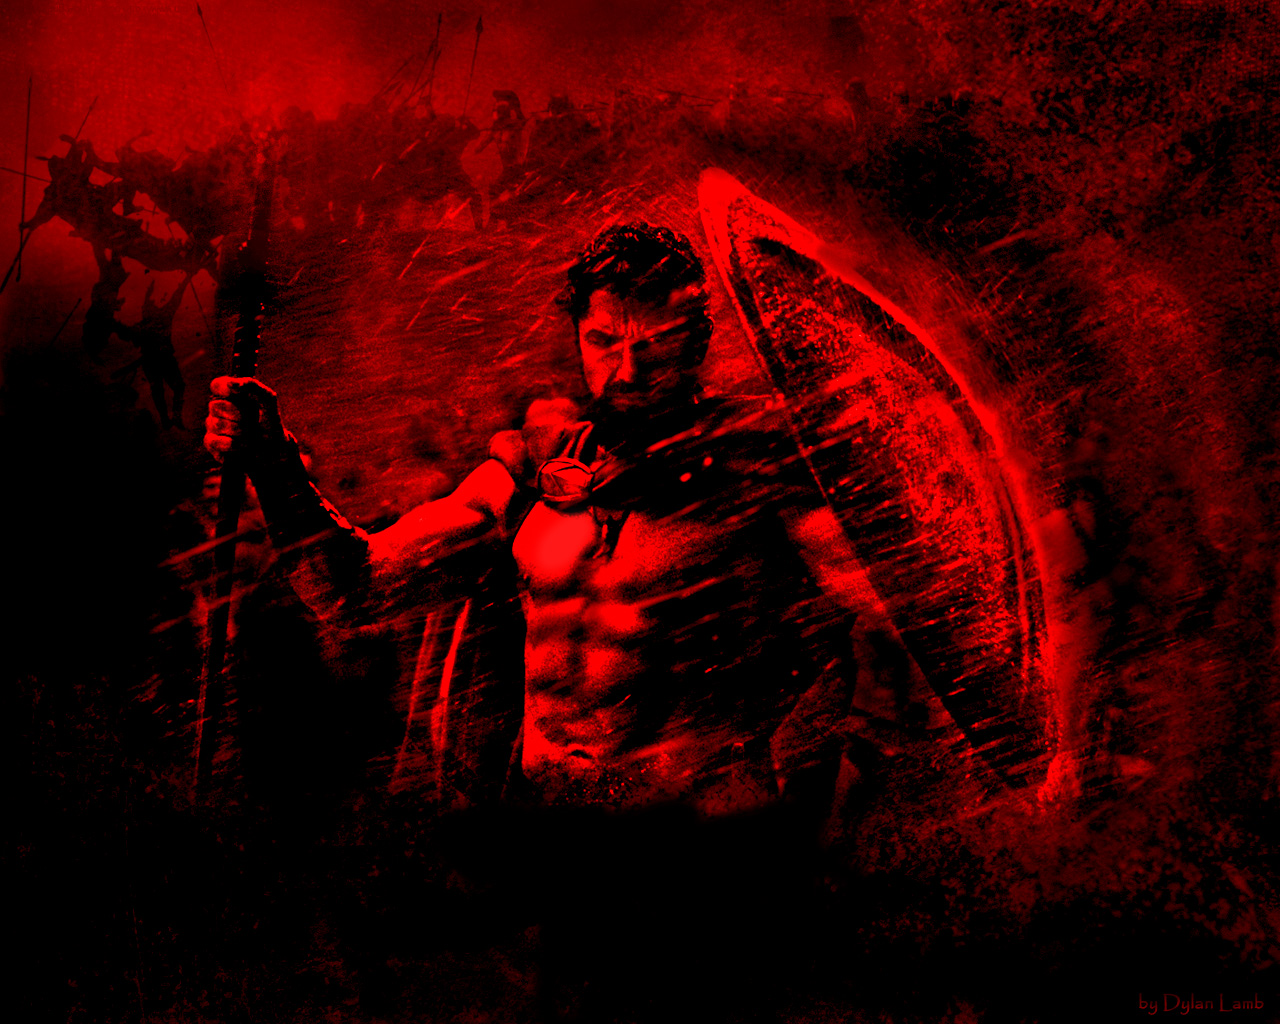 300 spartans wallpaper wallpapers - photo #41